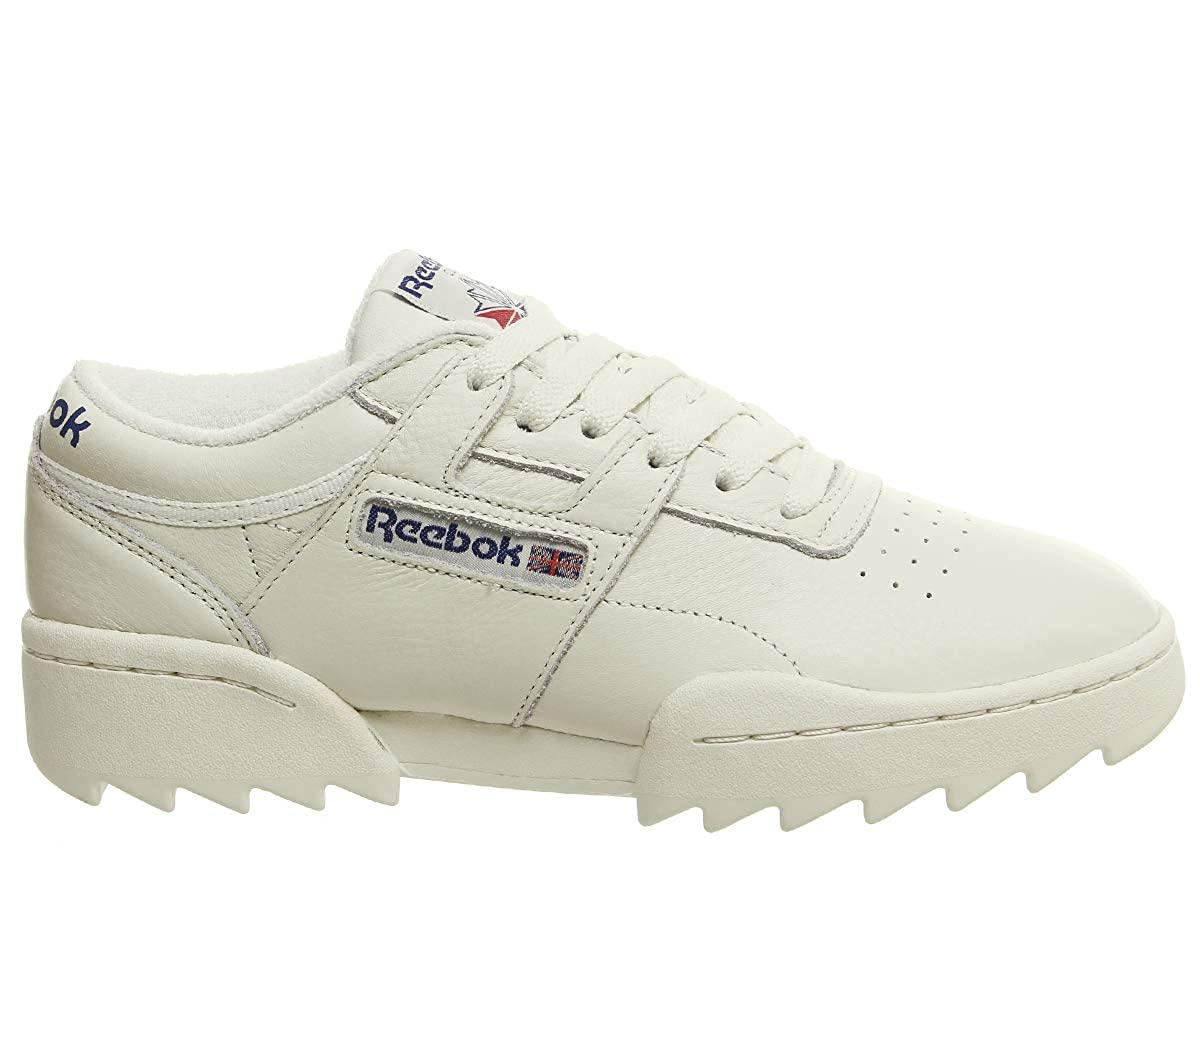 99156d17960 Amazon.com  Reebok Workout Ripple Og Womens Sneakers Natural  Clothing